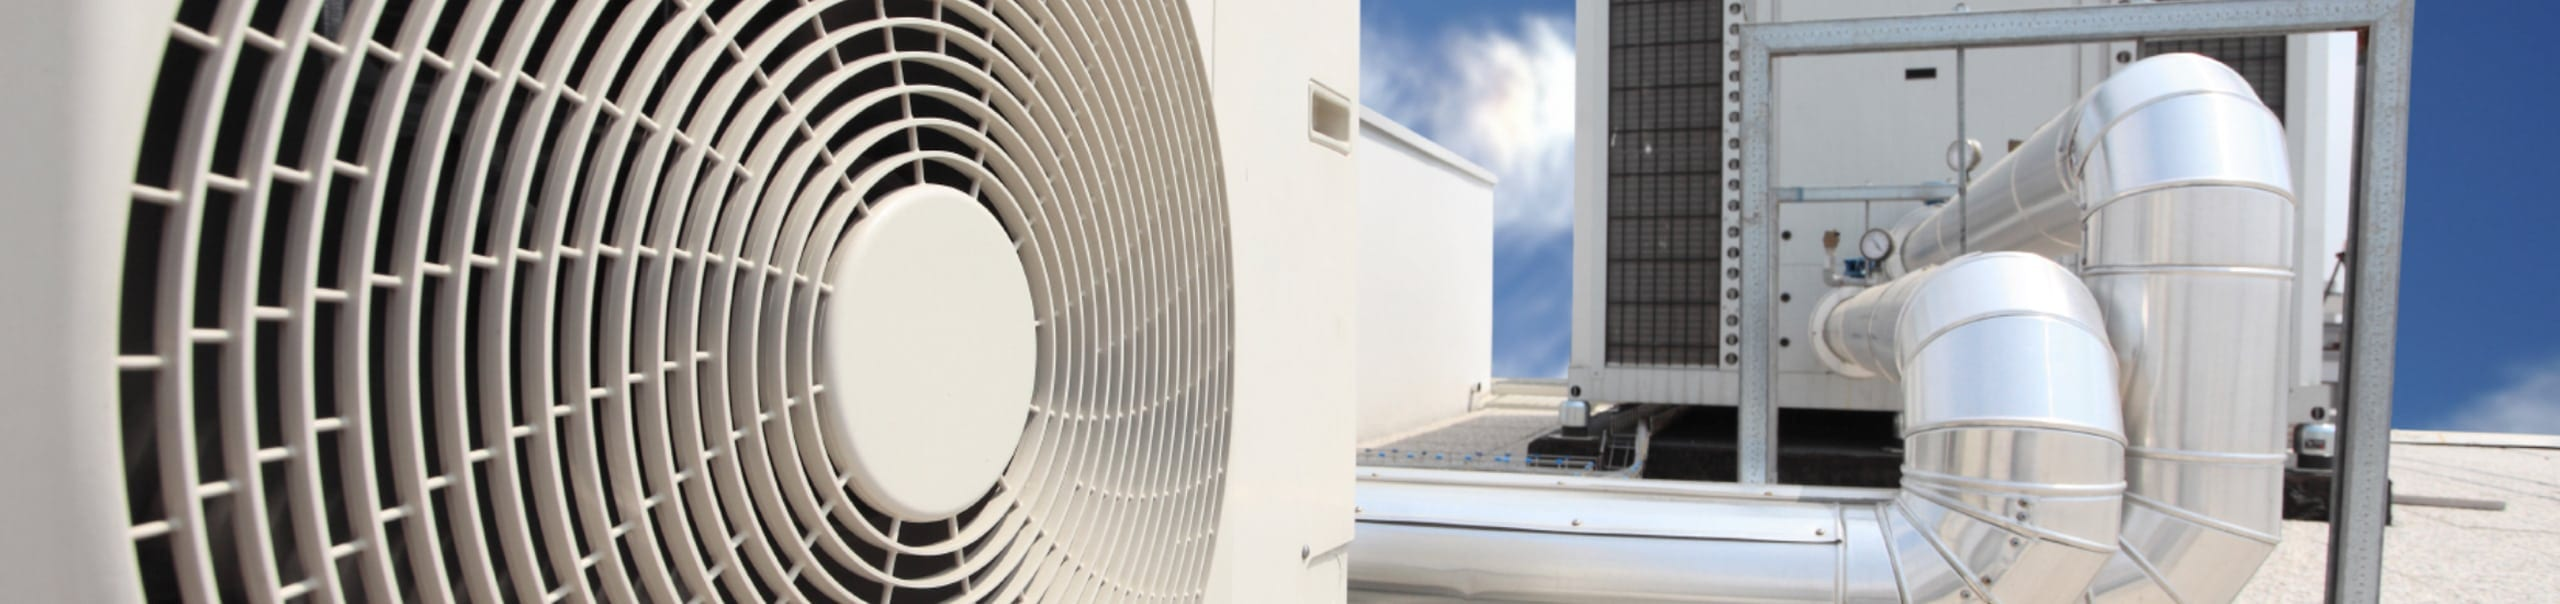 Commercial Air Conditioning Sales